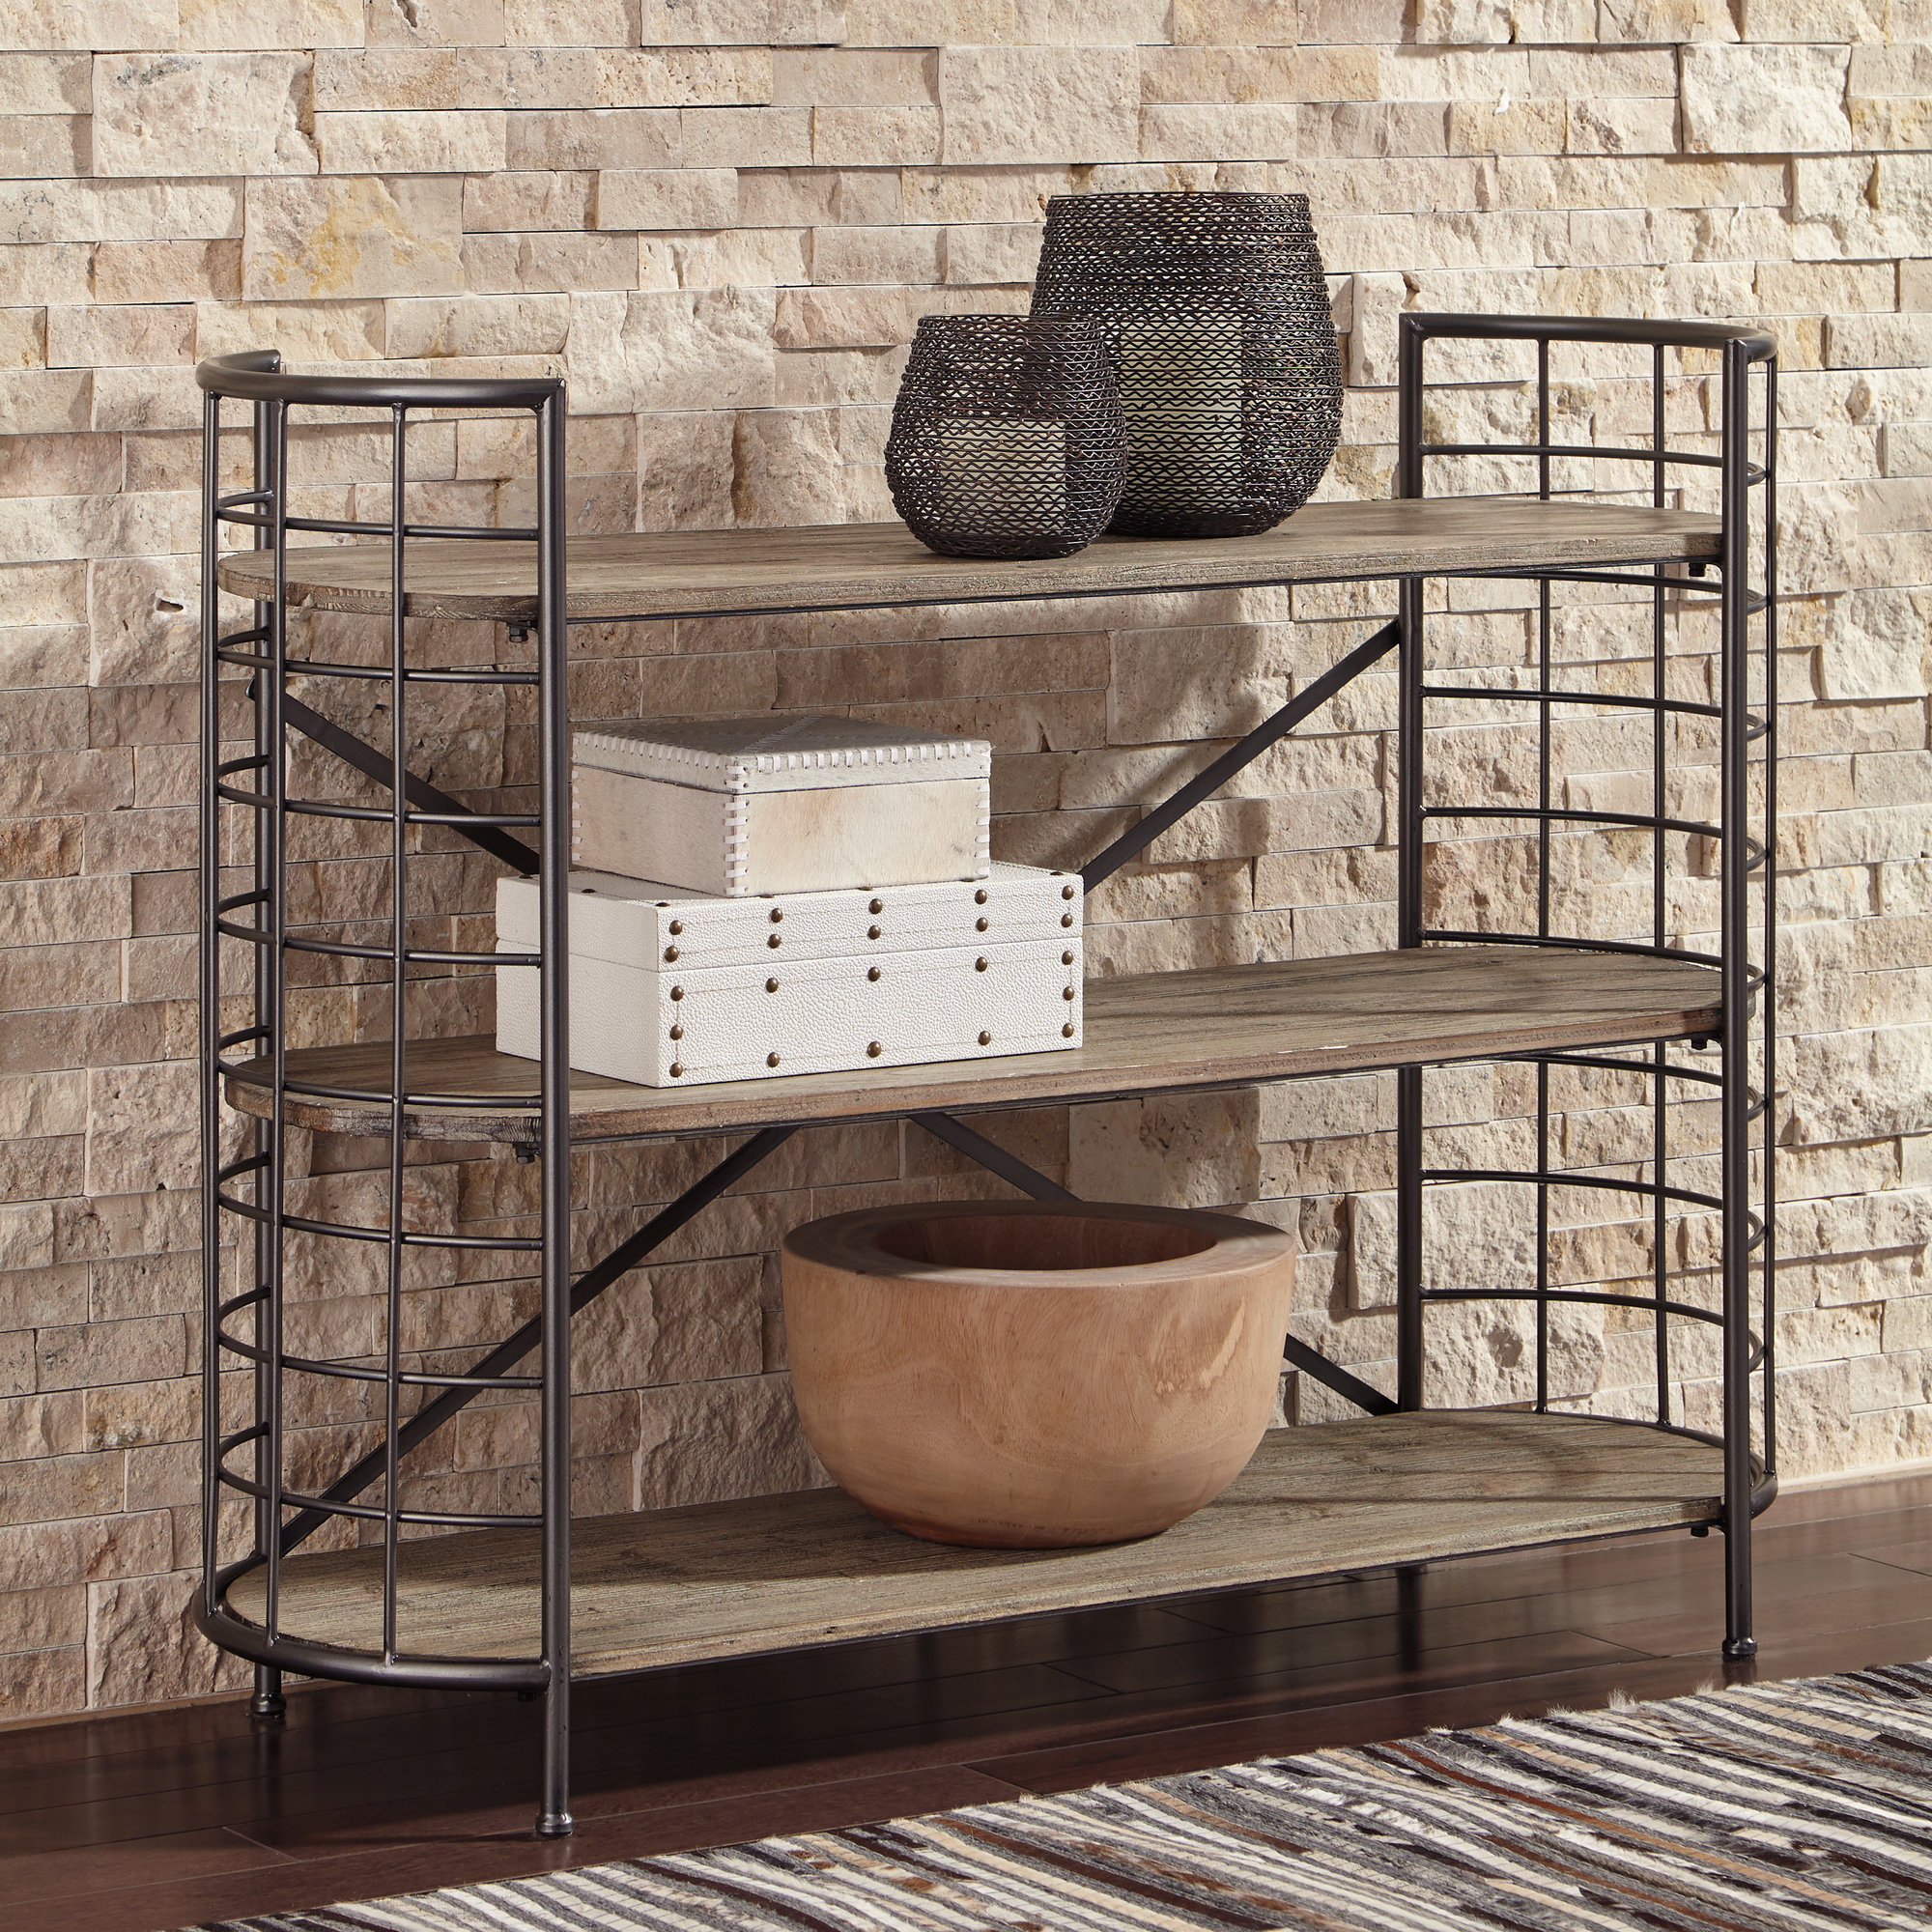 Fashionable Macon Etagere Bookcases Intended For Details About Williston Forge Adler Etagere Bookcase (View 9 of 20)